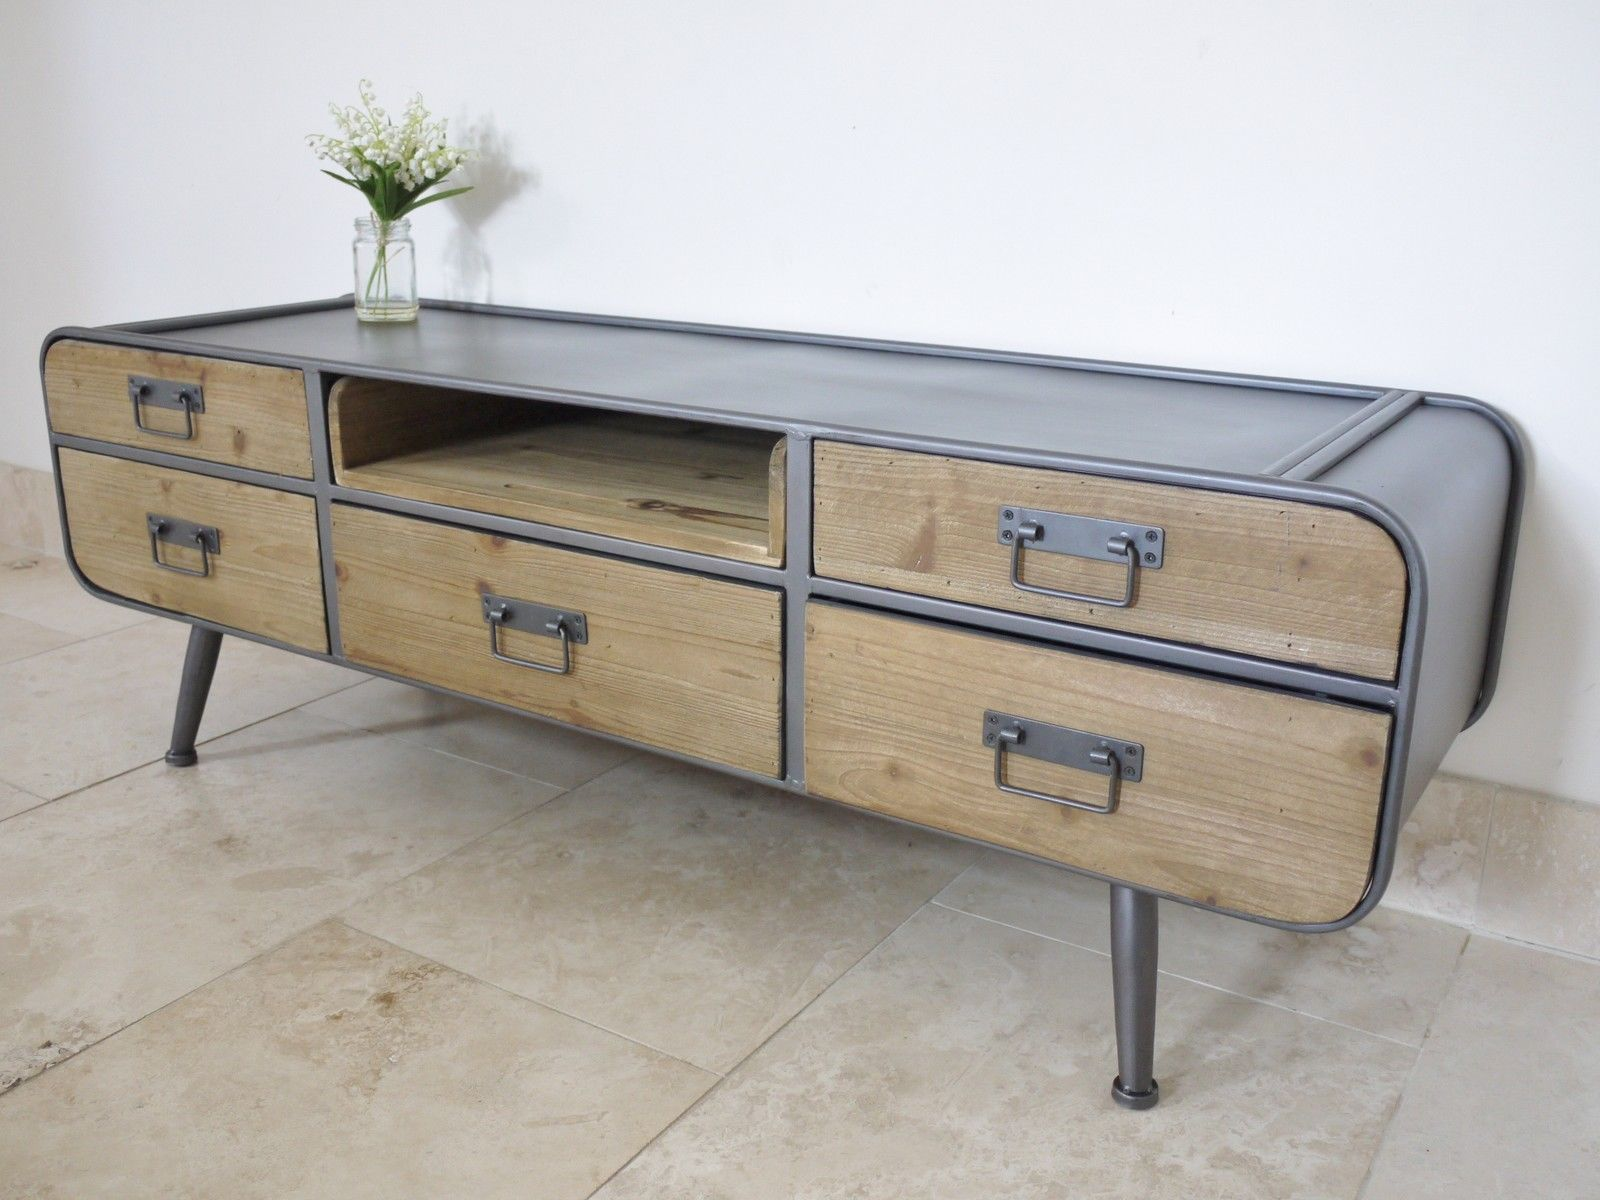 Details About Vintage Industrial TV Media Stand Retro Urban Media Tv Bench  Cabinet